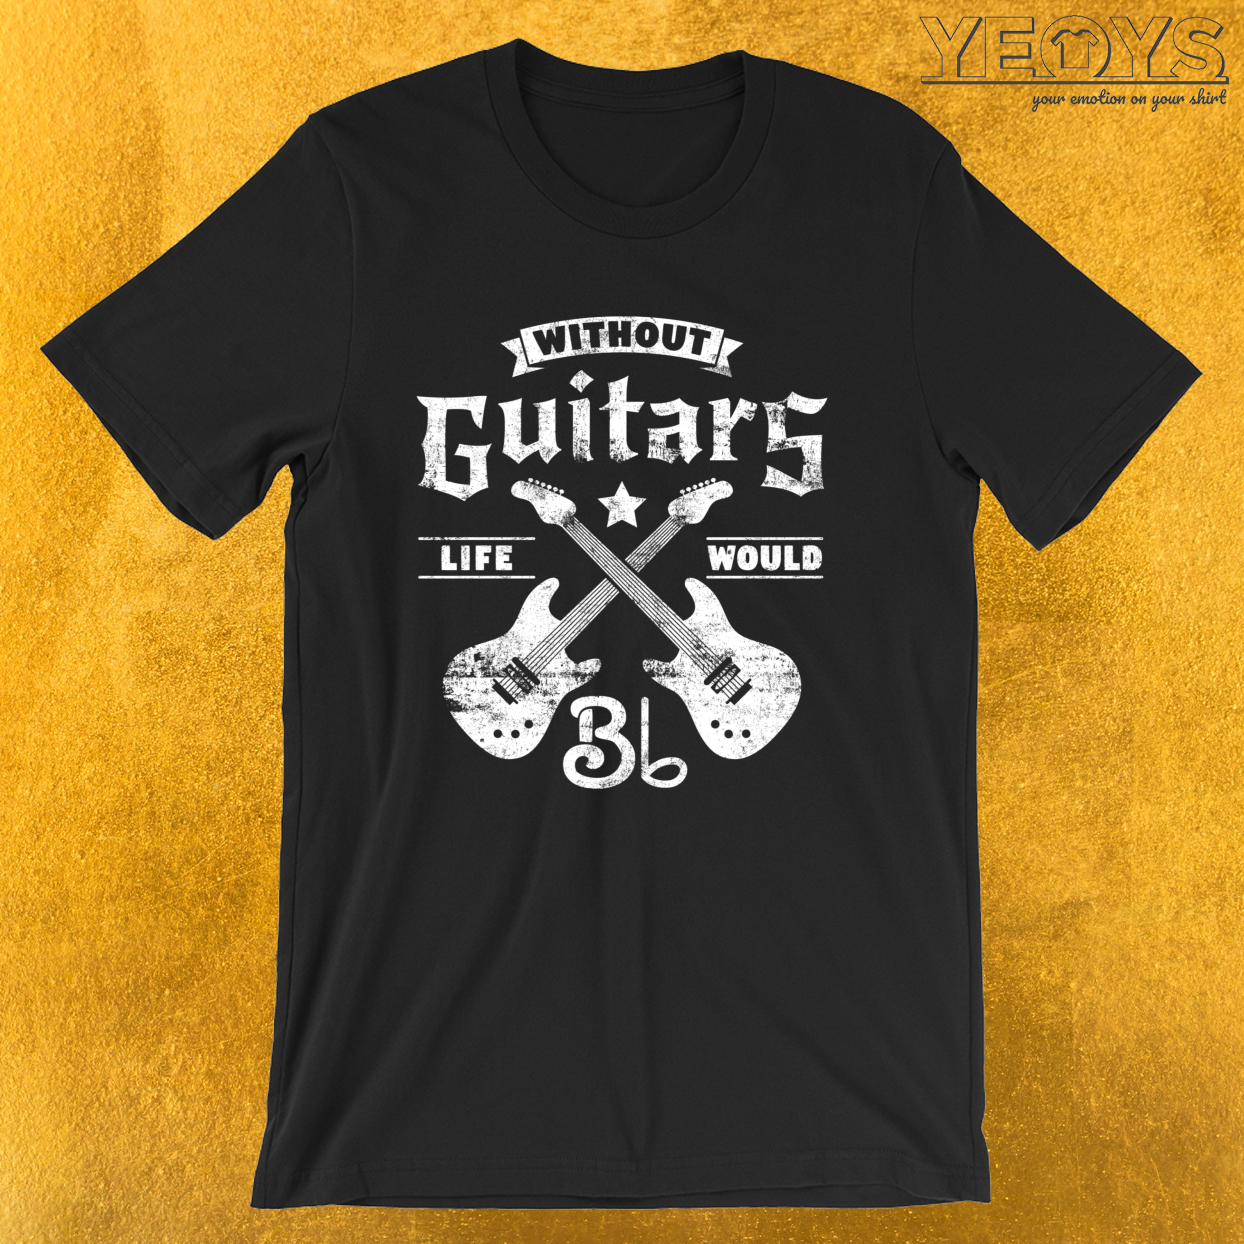 Without Guitars Life Would B Flat – Funny Music Quotes Tee